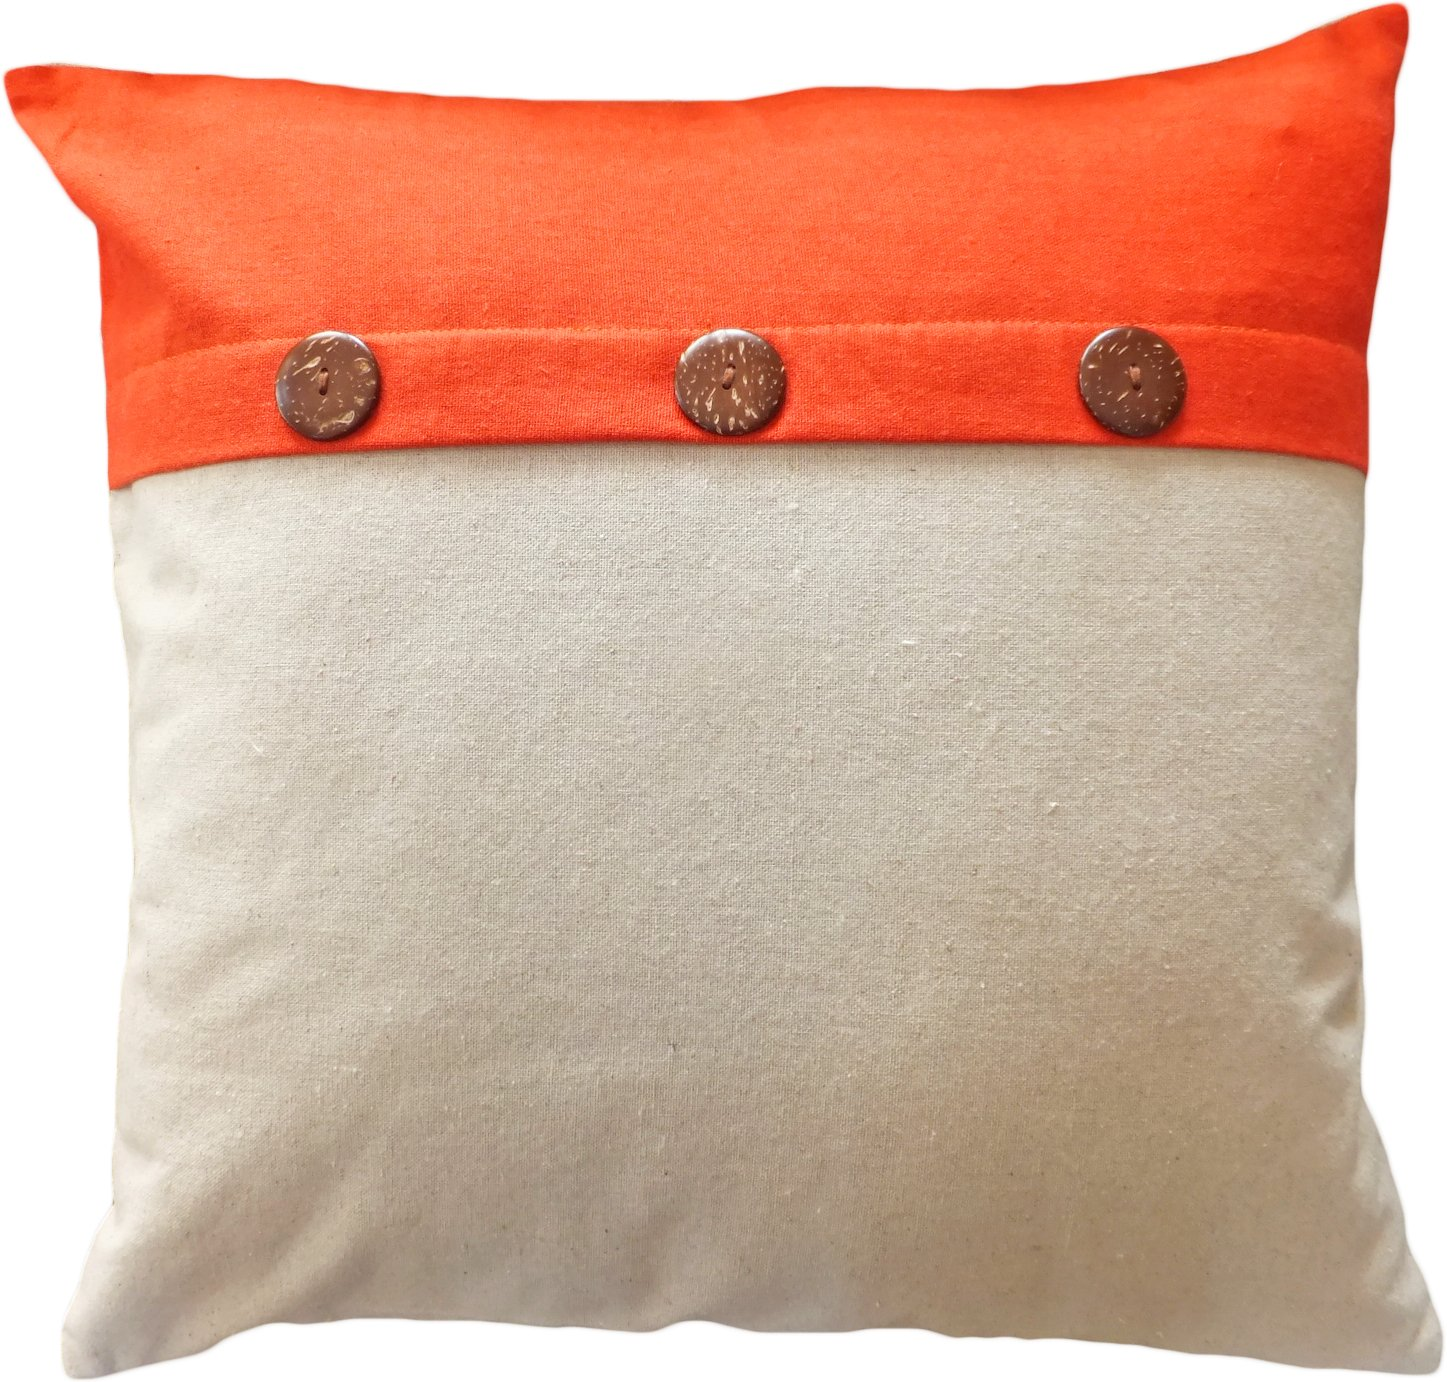 amazoncom decorative coconut buttons throw pillow cover   - amazoncom decorative coconut buttons throw pillow cover  orange home kitchen